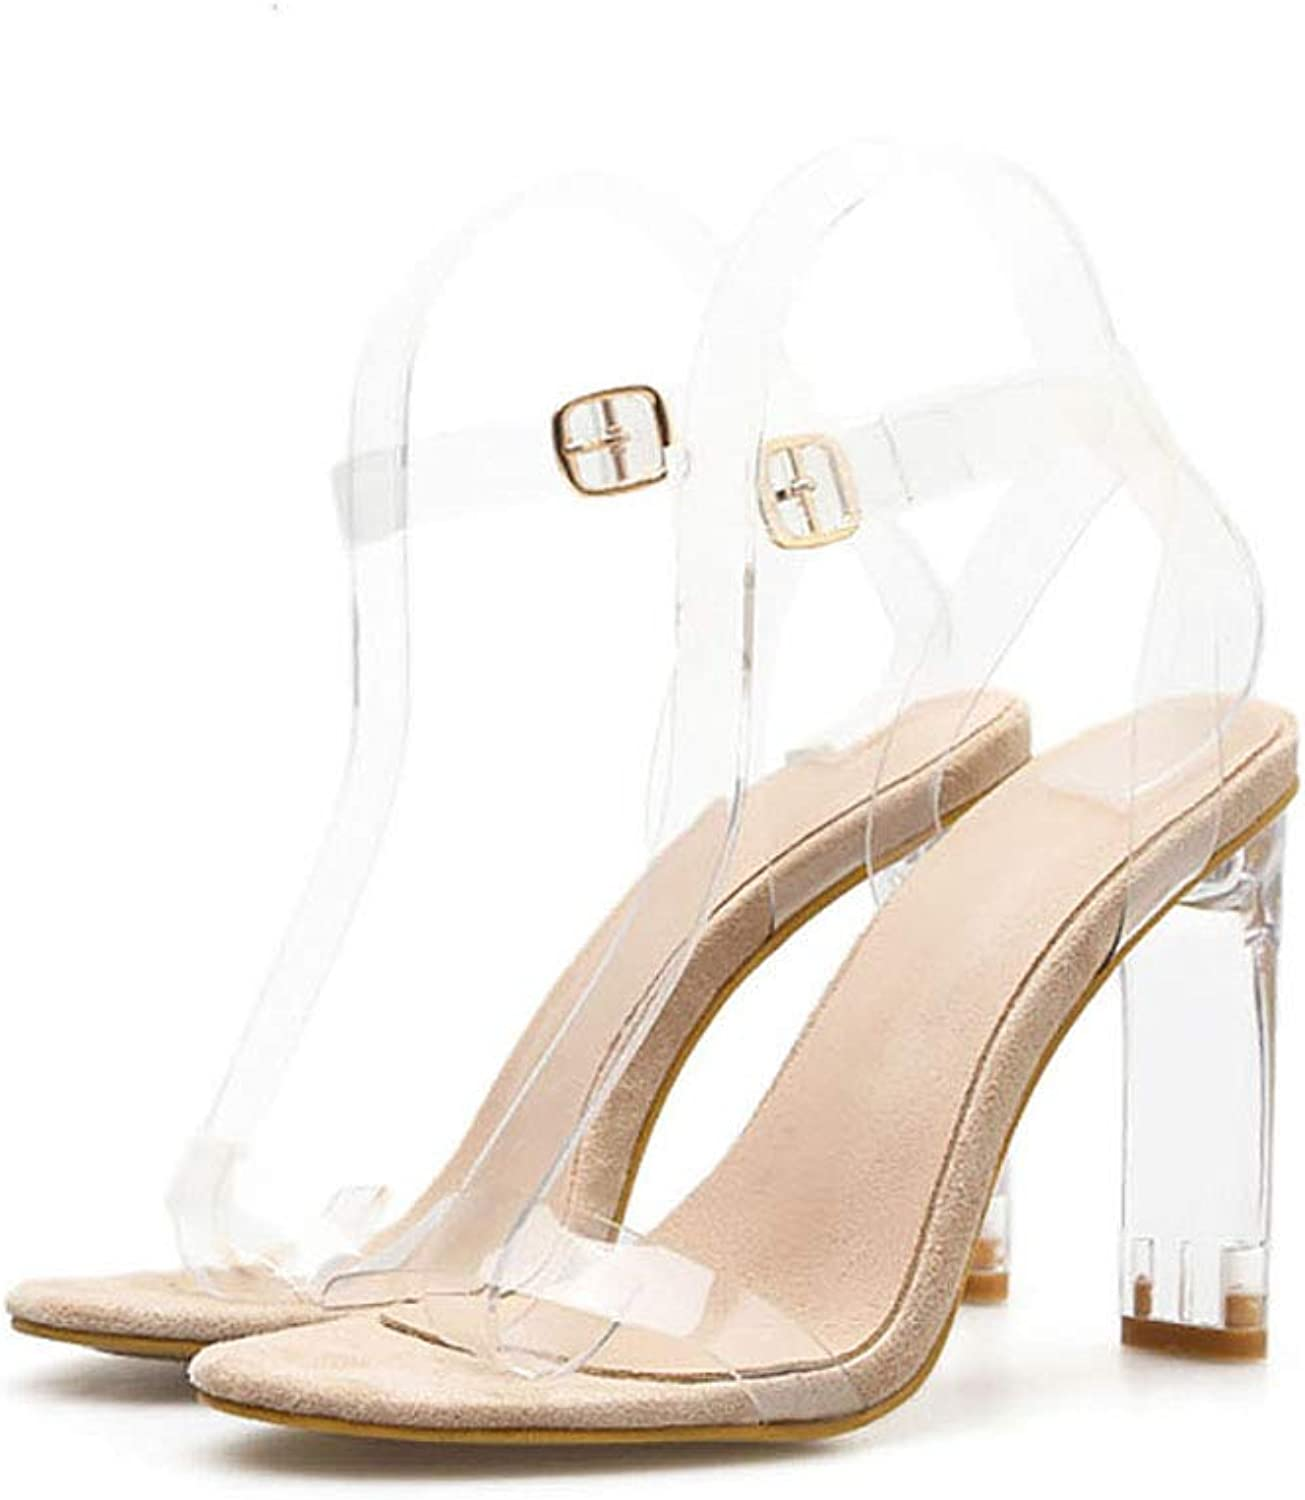 Women's High Heel Open Peep Toe Sandal, Ankle Strap Sandals for Dress Wedding Party Evening shoes Clear Strappy Block Chunky,Clear,36